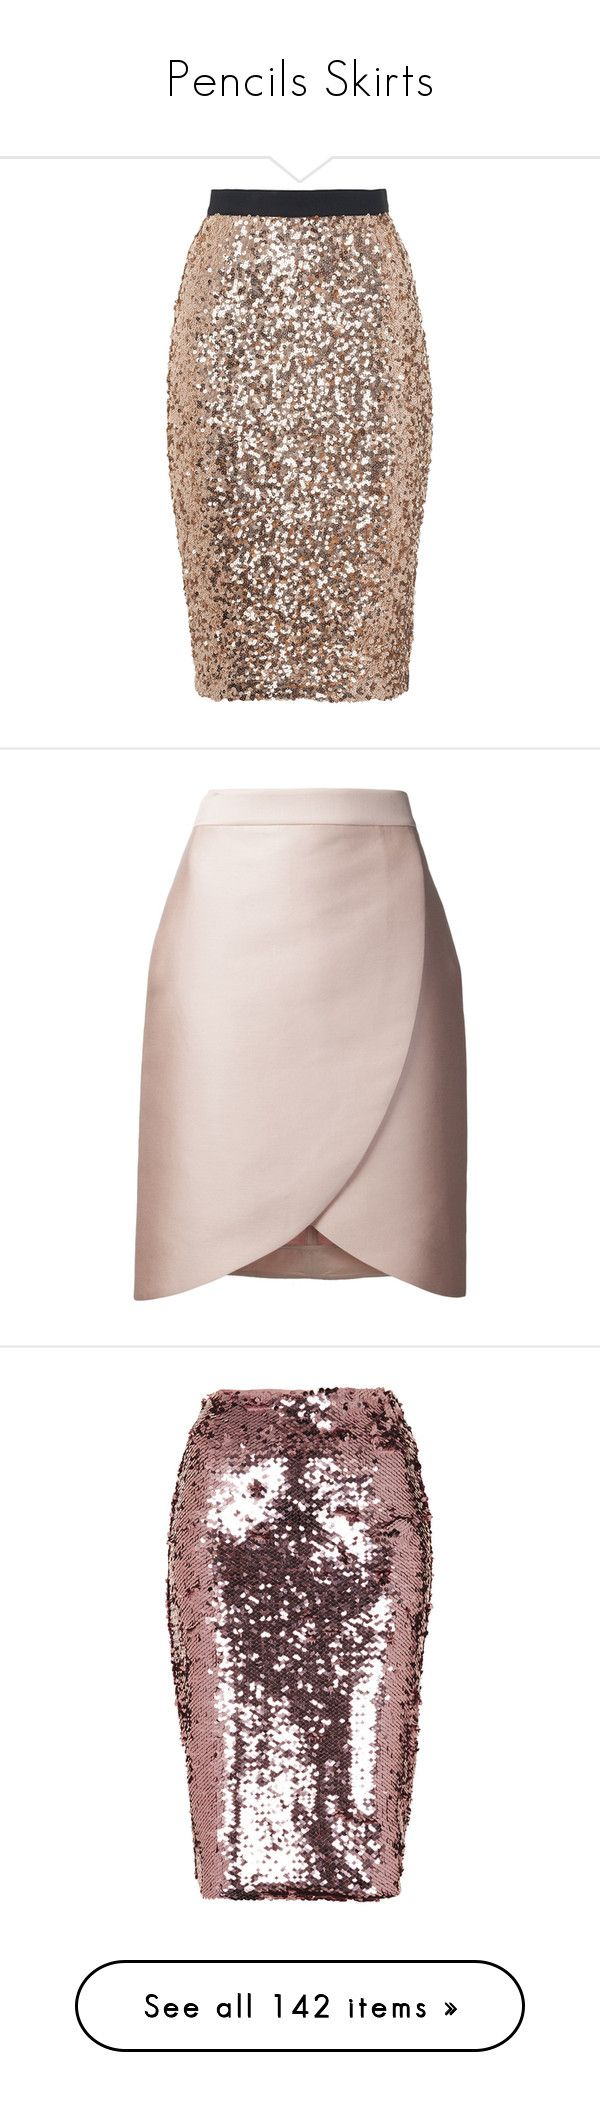 """Pencils Skirts"" by carolines-closet ❤ liked on Polyvore featuring skirts, wet look skirt, sequin pencil skirt, french connection skirt, gold pencil skirt, sparkly pencil skirt, short skirts, pink skirt, short pencil skirt and knee length pencil skirt"